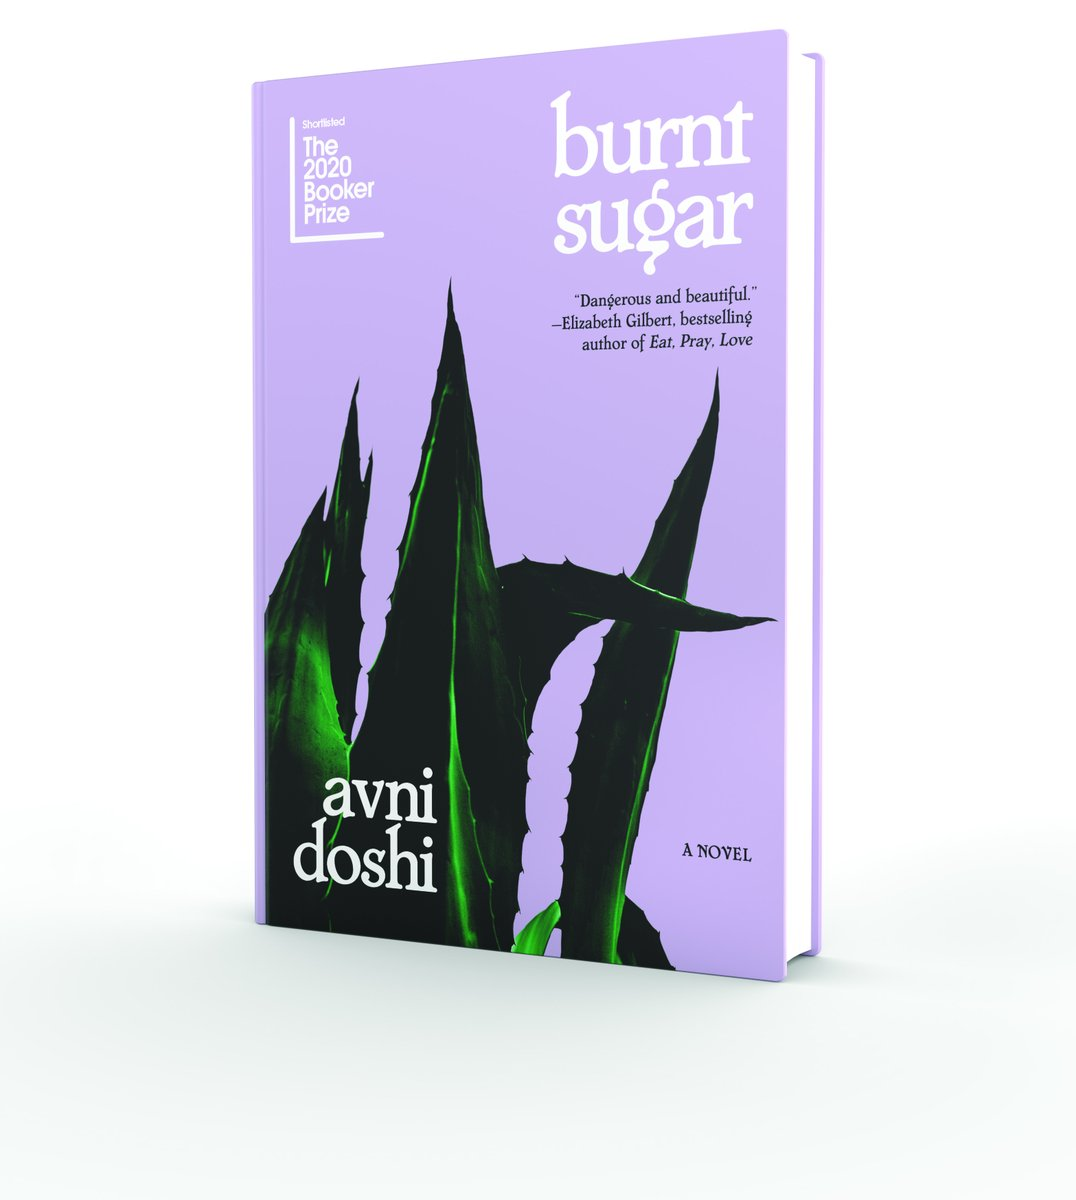 With gorgeous prose and an emotional thrum through every paragraph, its easy to see why this story deserved a spot on the Booker Prize shortlist. Enter to win an advance galley of Avni Doshis BURNT SUGAR: bit.ly/2EpFneY #ShelfGLOW @ABRAMSbooks